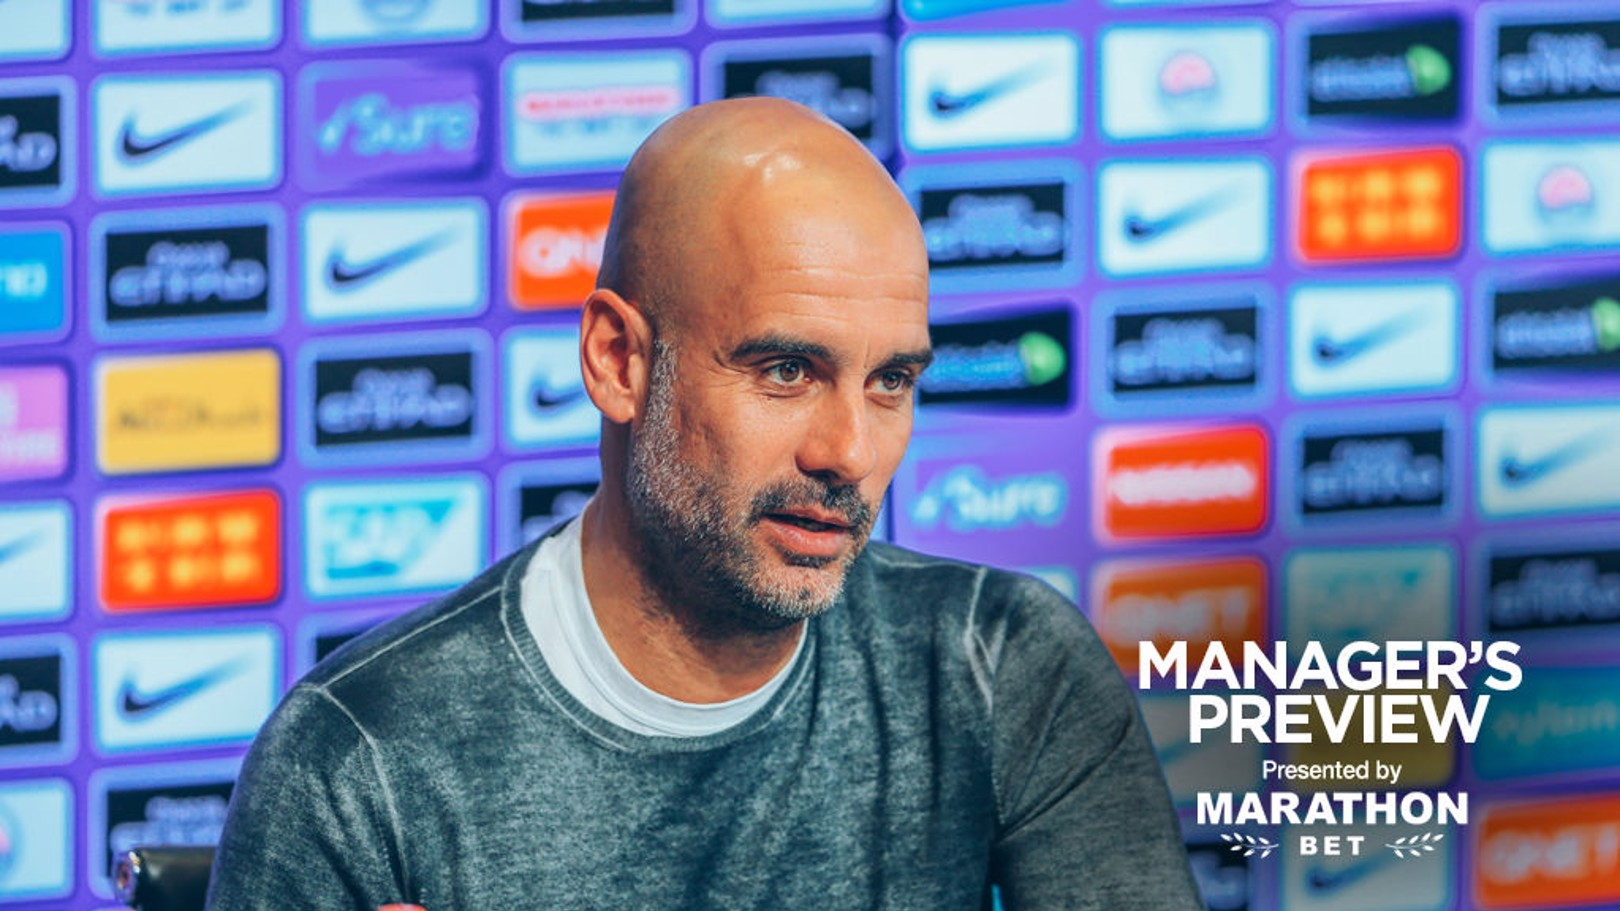 PEP TALK: The boss gives us an injury update as KDB returns to training